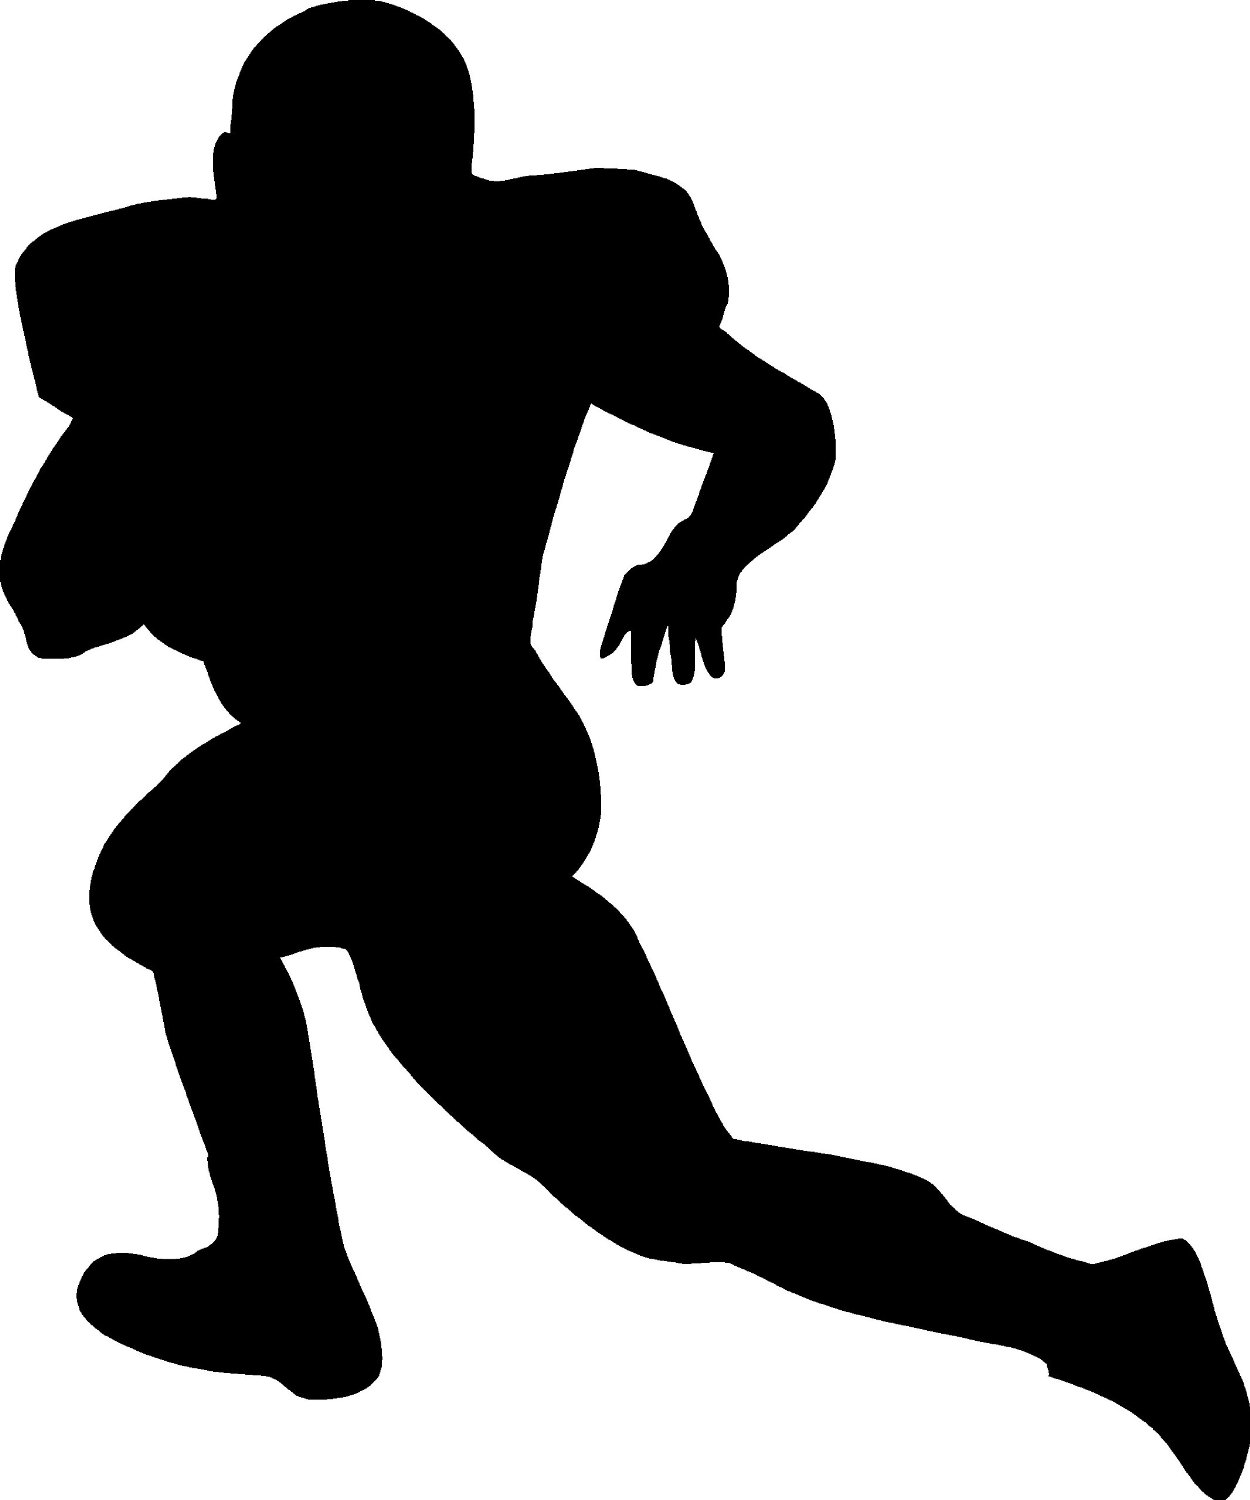 1250x1500 Best Football Player Clipart Black And White